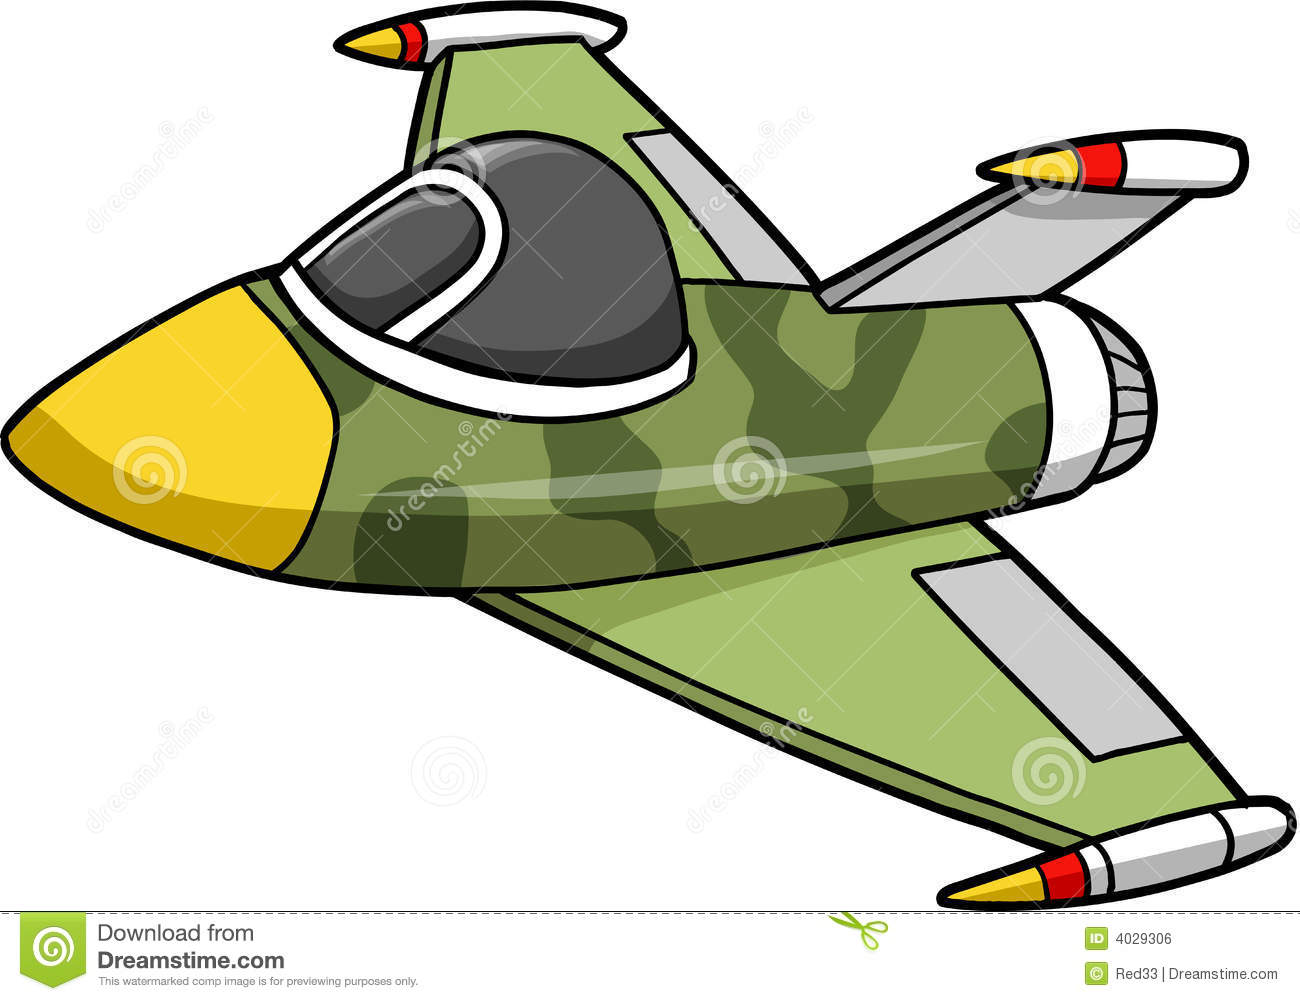 clipart of jet - photo #36